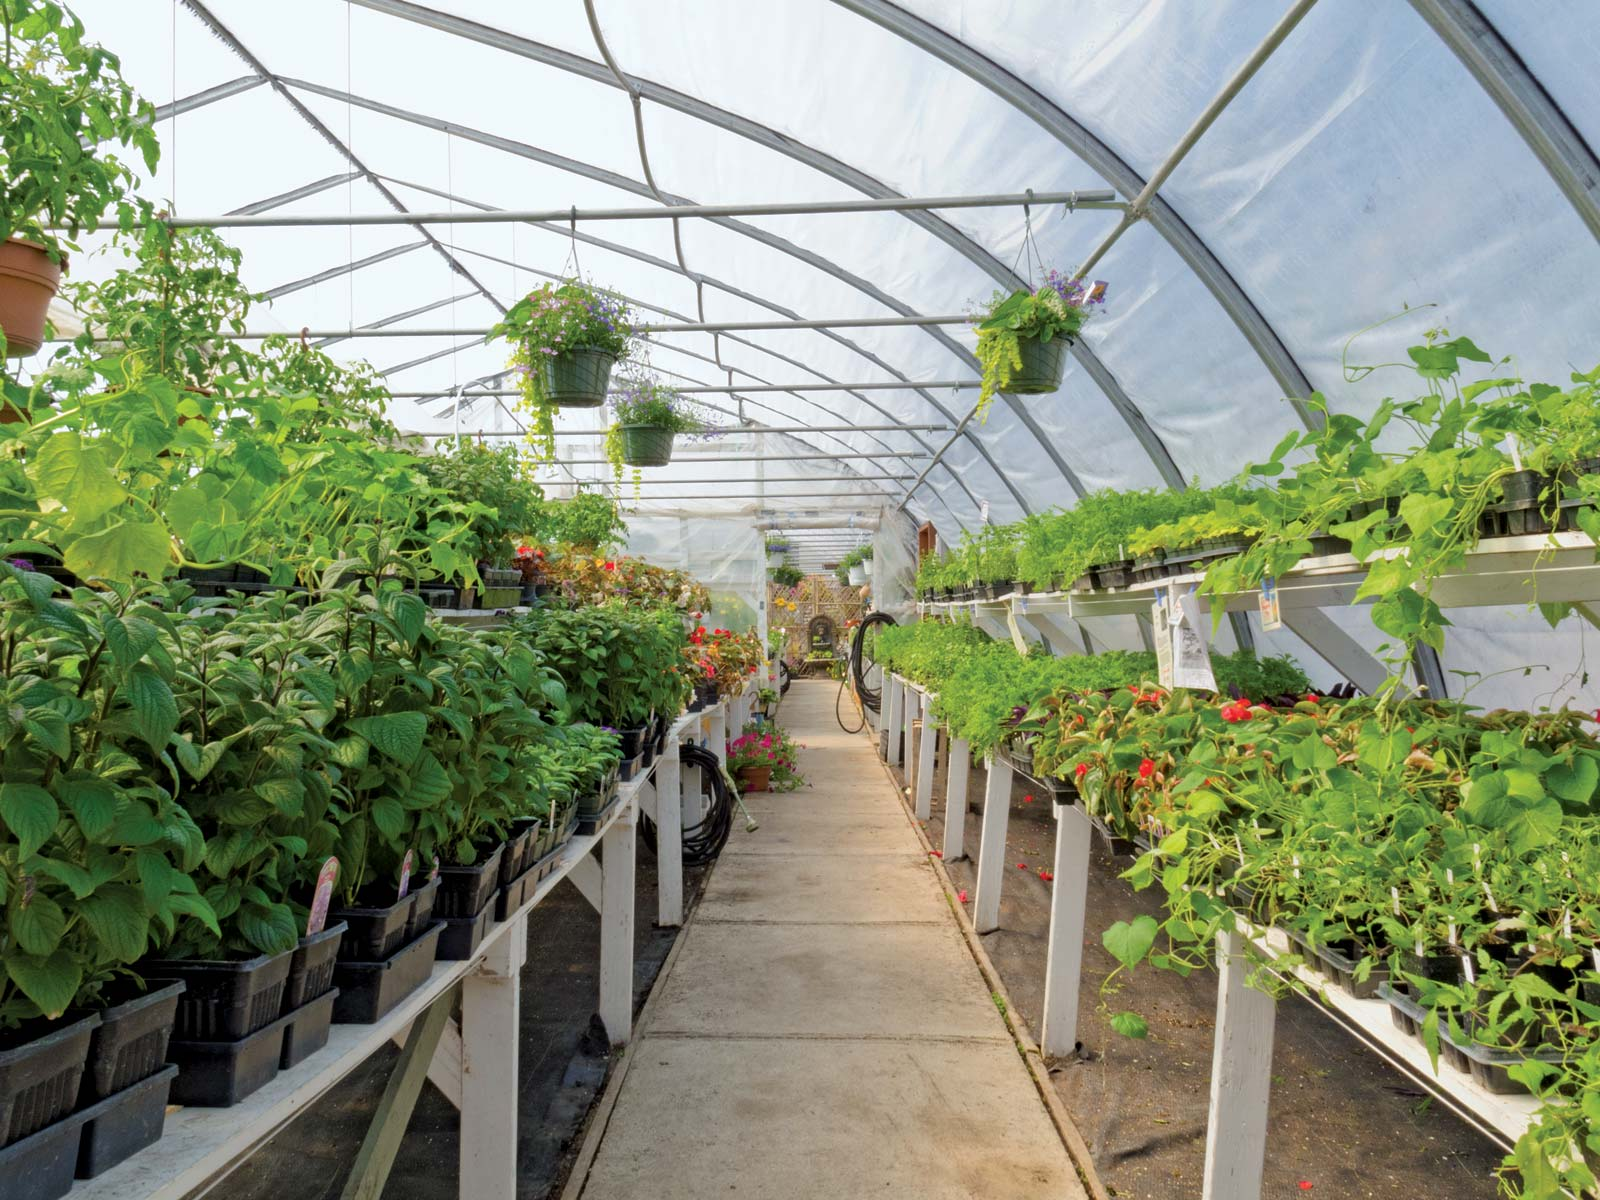 Image of a greenhouse